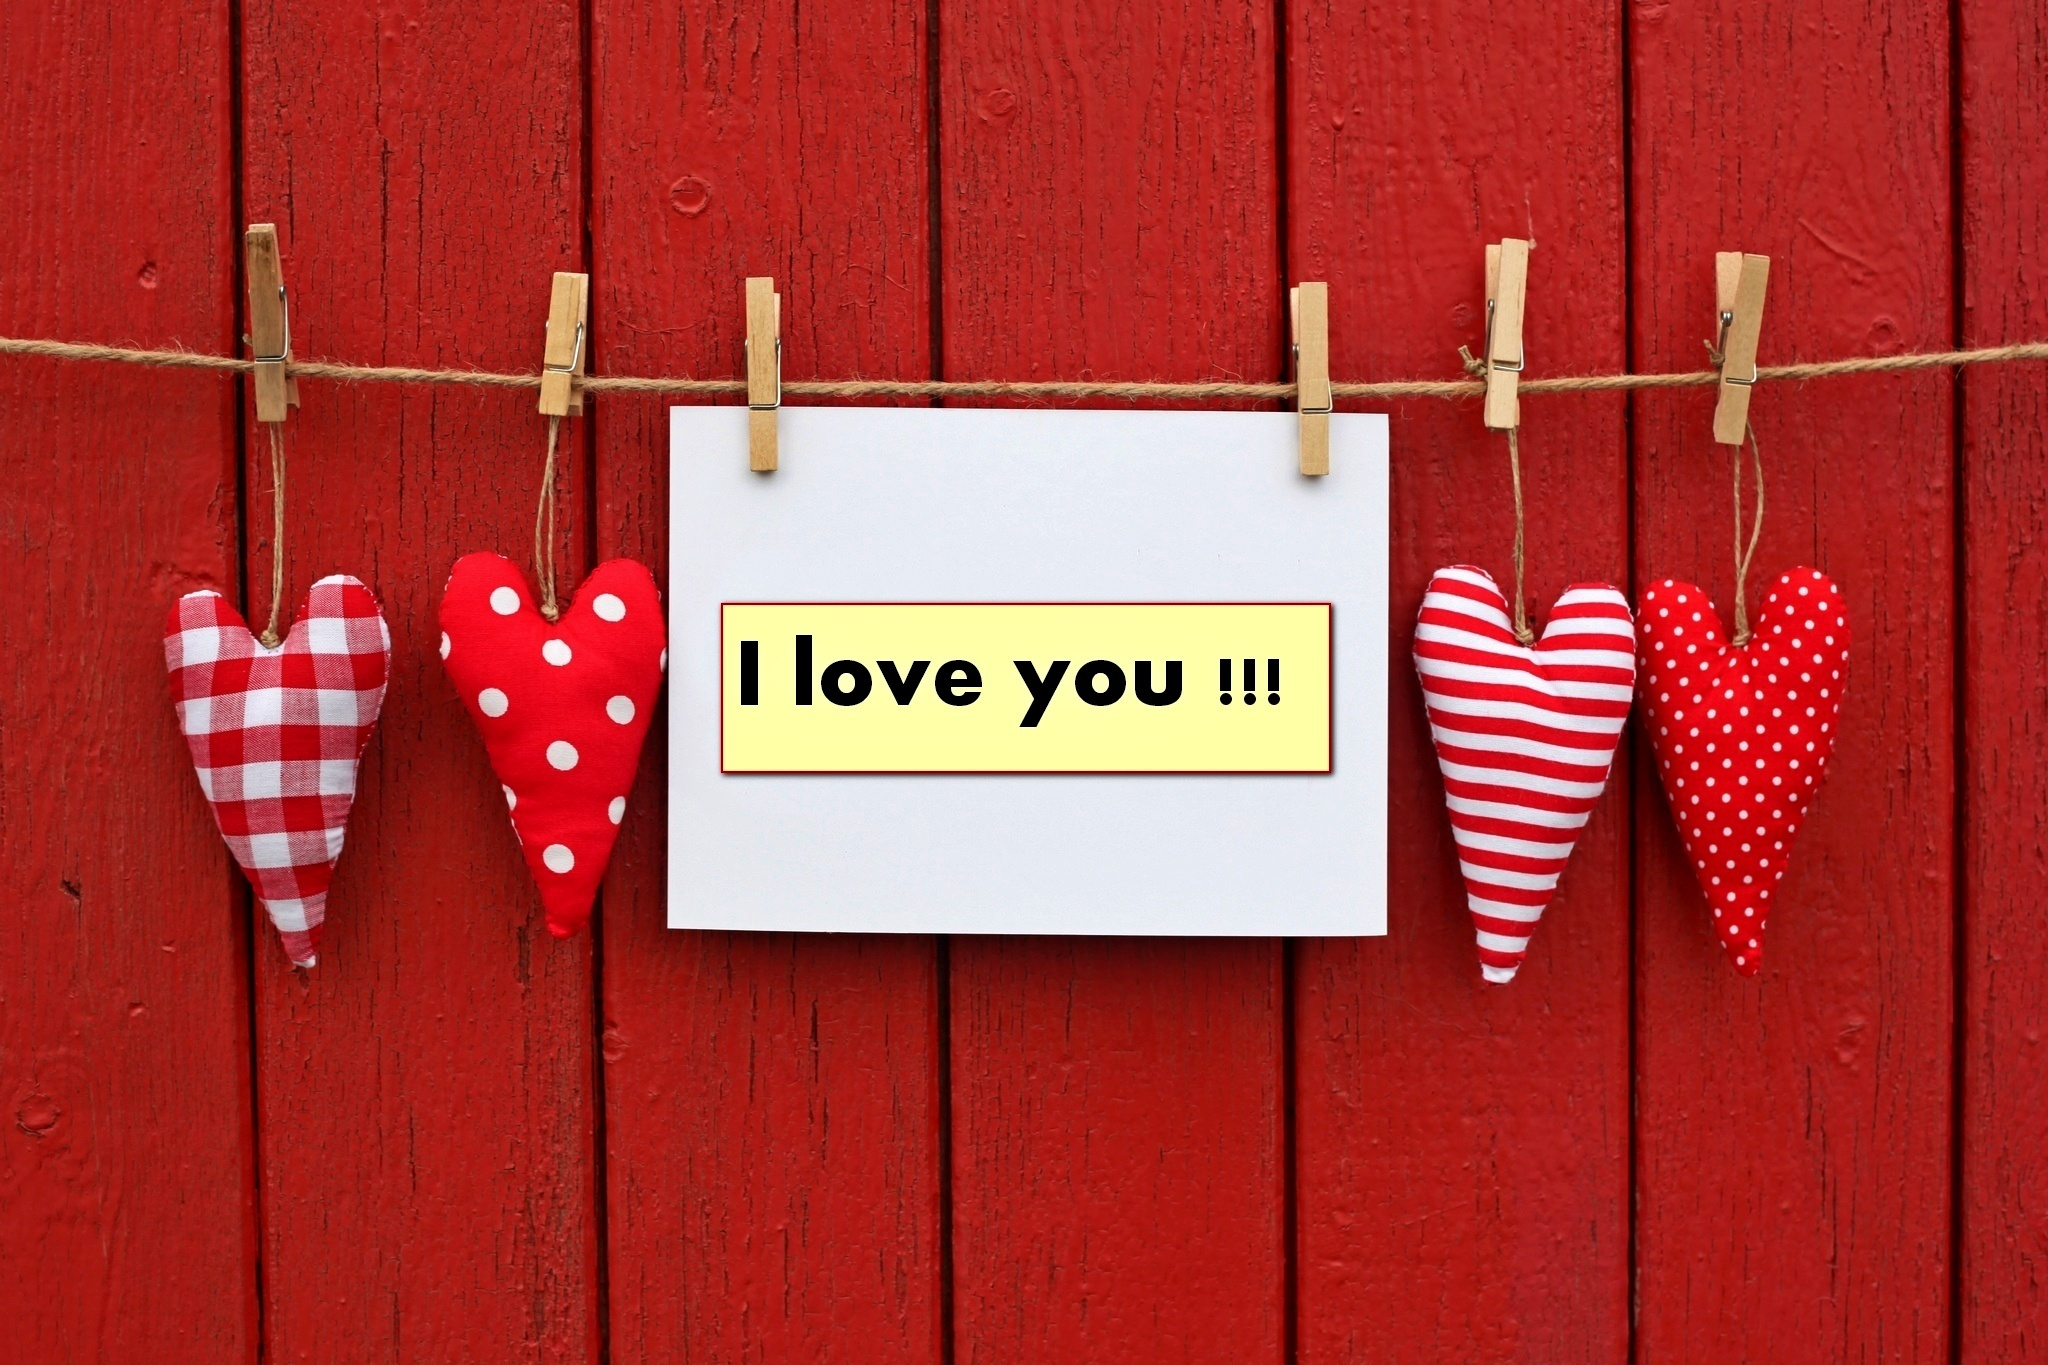 Wallpaper I Love You Hd : I Love You Wallpapers HD A9 - HD Desktop Wallpapers 4k HD